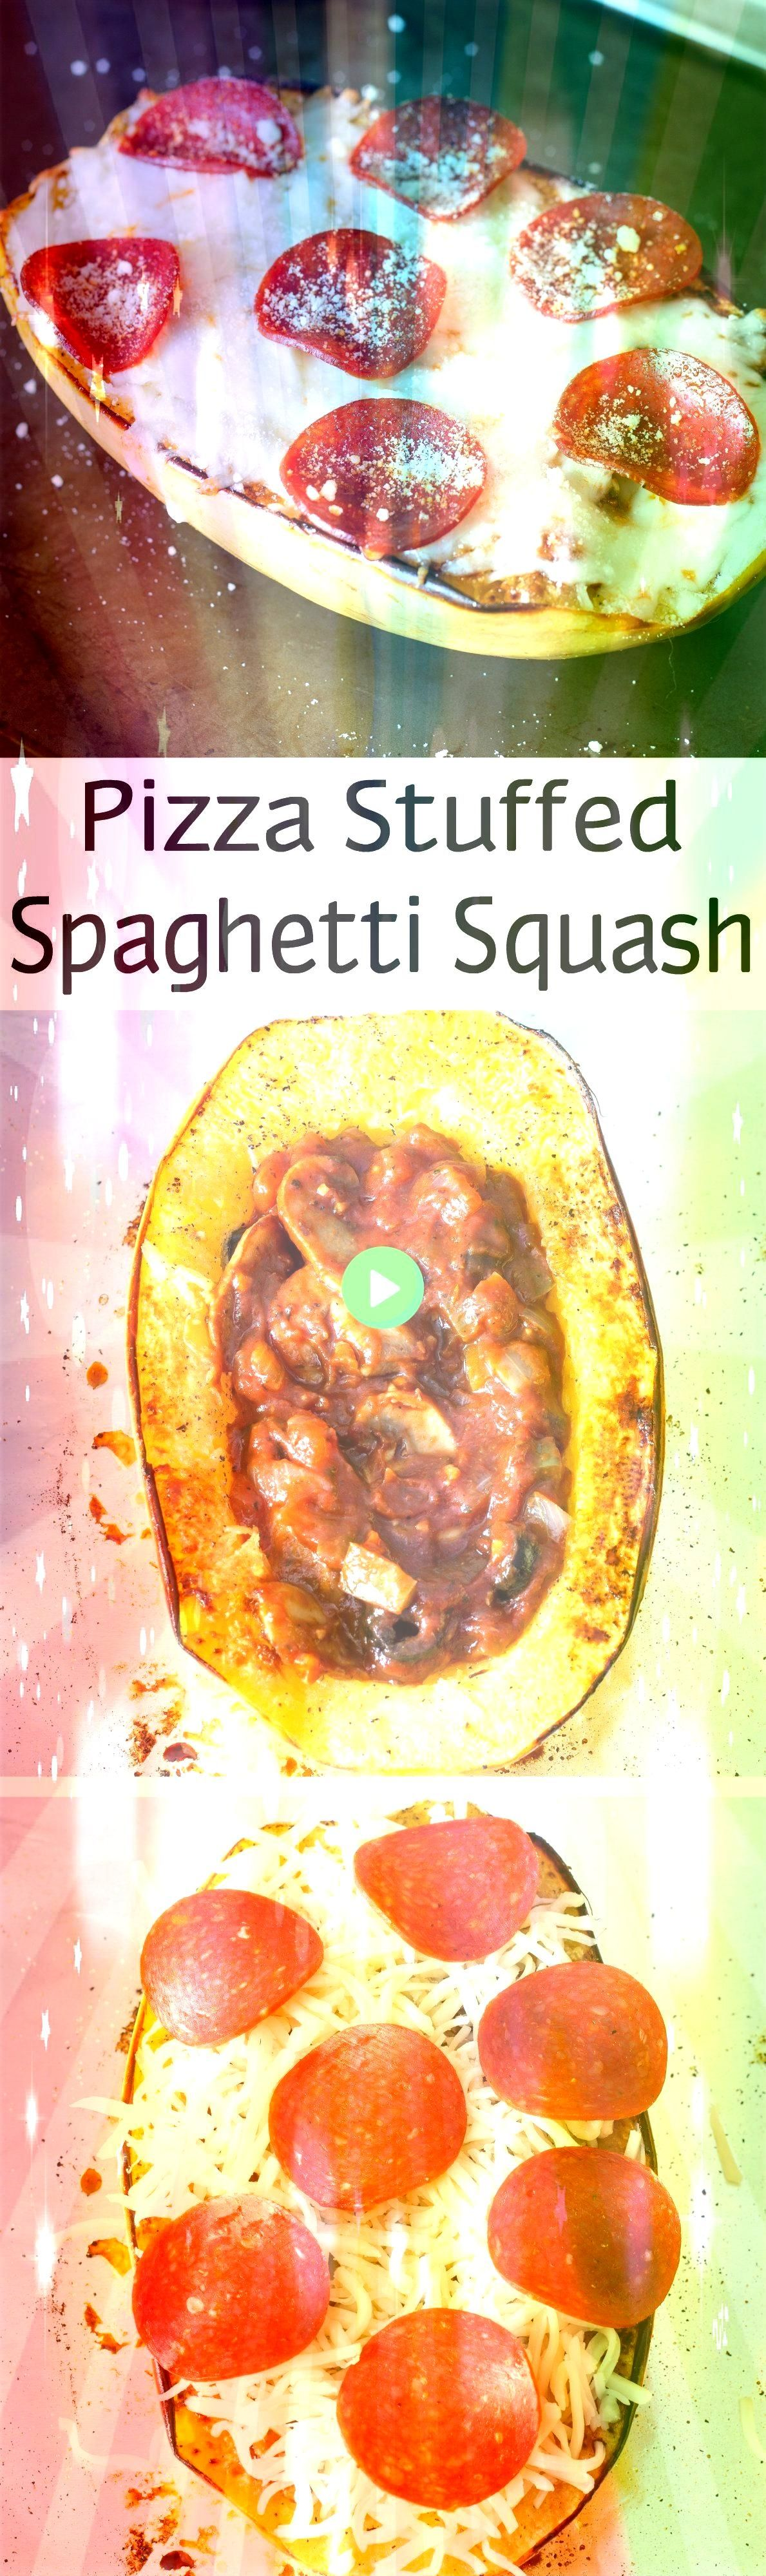 Stuffed Spaghetti Squash Pizza stuffed spaghetti squash is a roasted spaghetti squash filled with veggies and pizza sauce topped with cheese and pepperoni and baked Stuff...